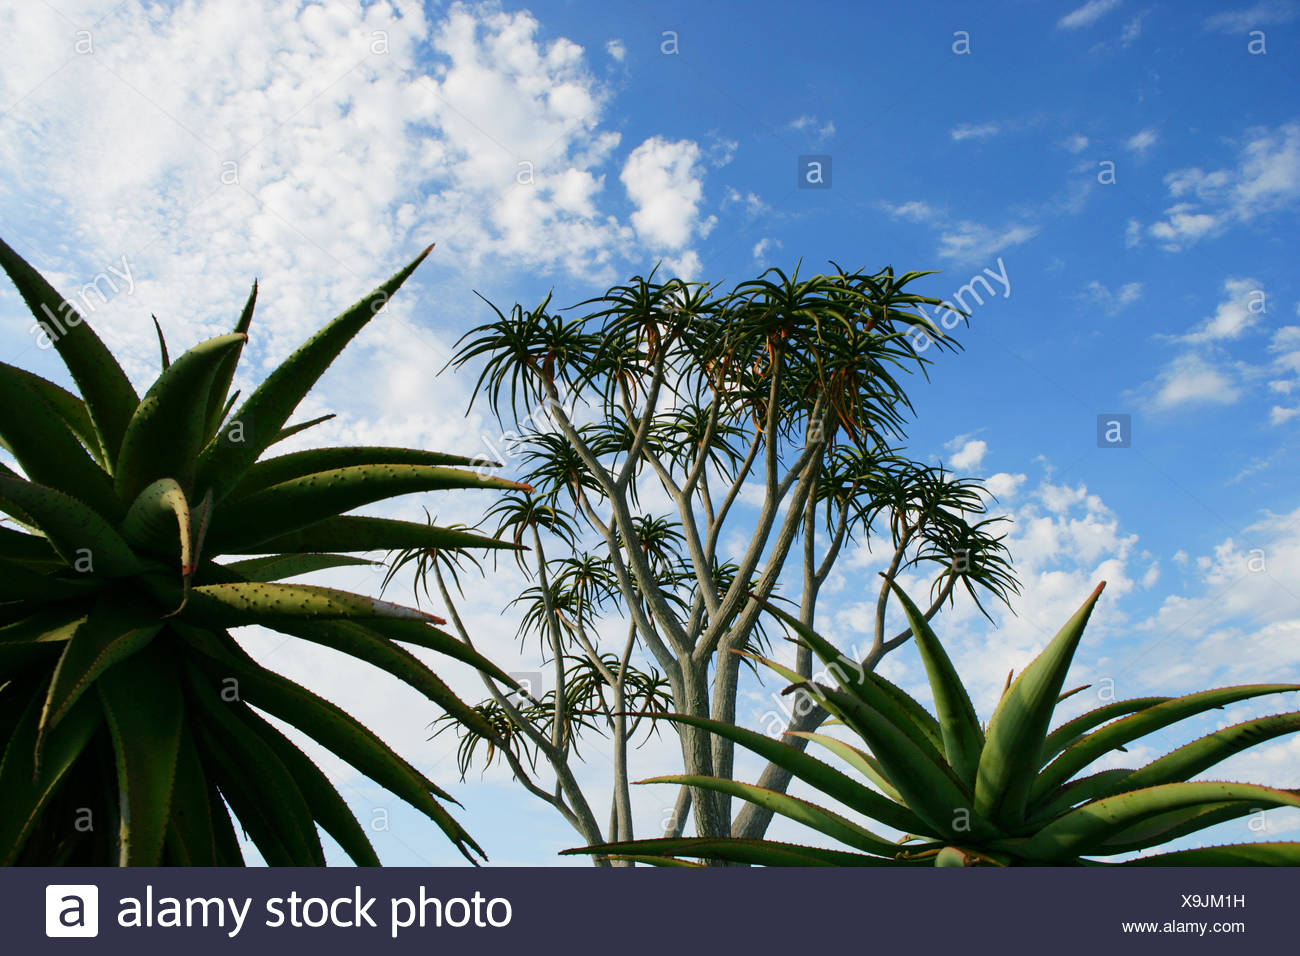 Low angle view of plants against cloudy sky - Stock Image